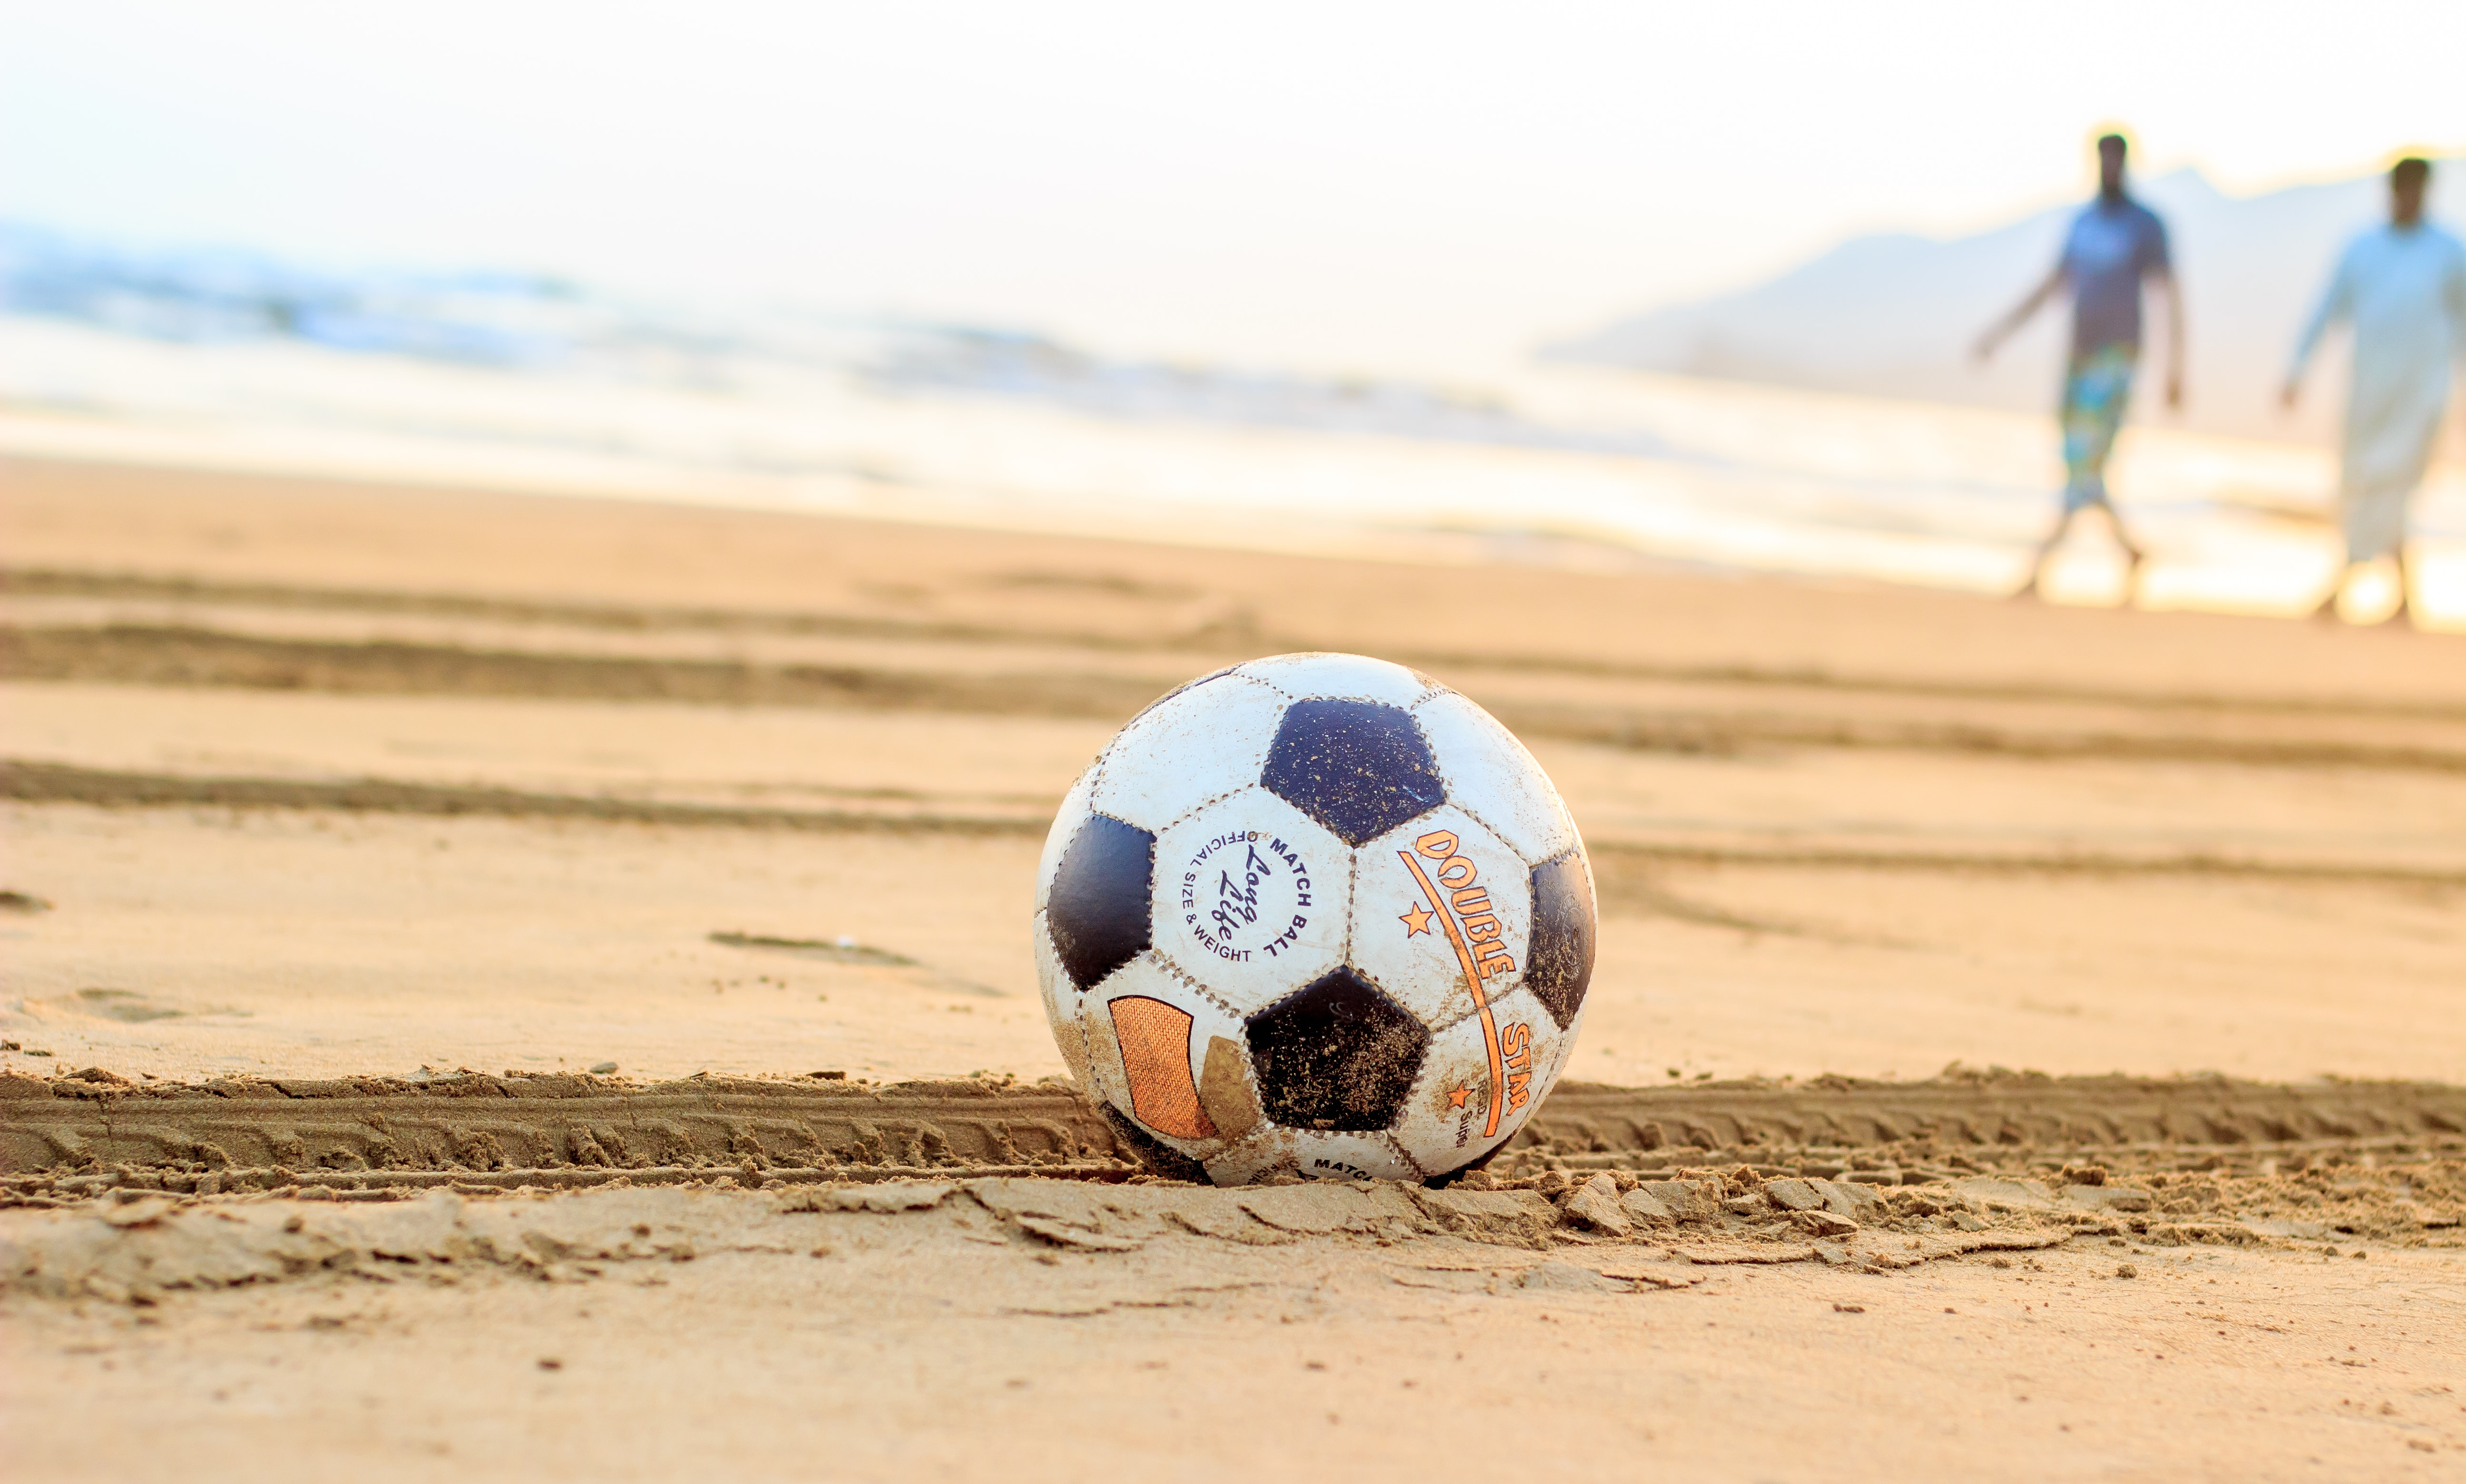 soccer ball on brown sand with two man in the background